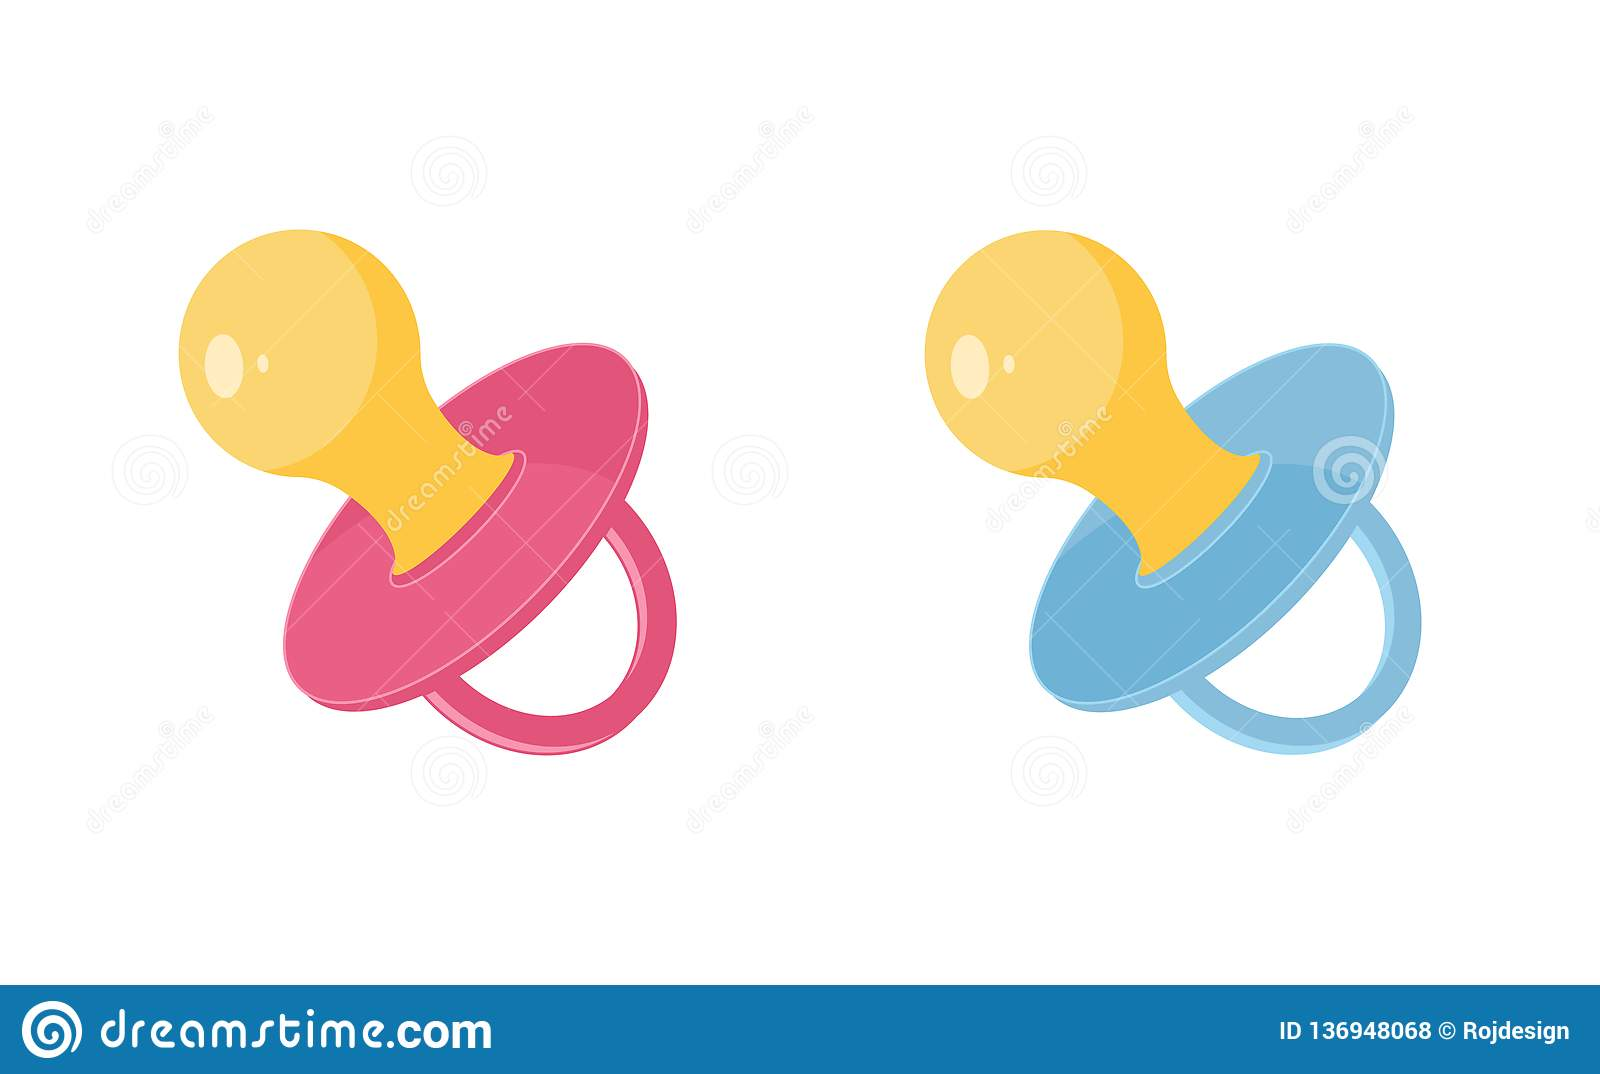 Baby pacifier vector illustration set - pink and blue newborn dummy for girls and boys in flat style.